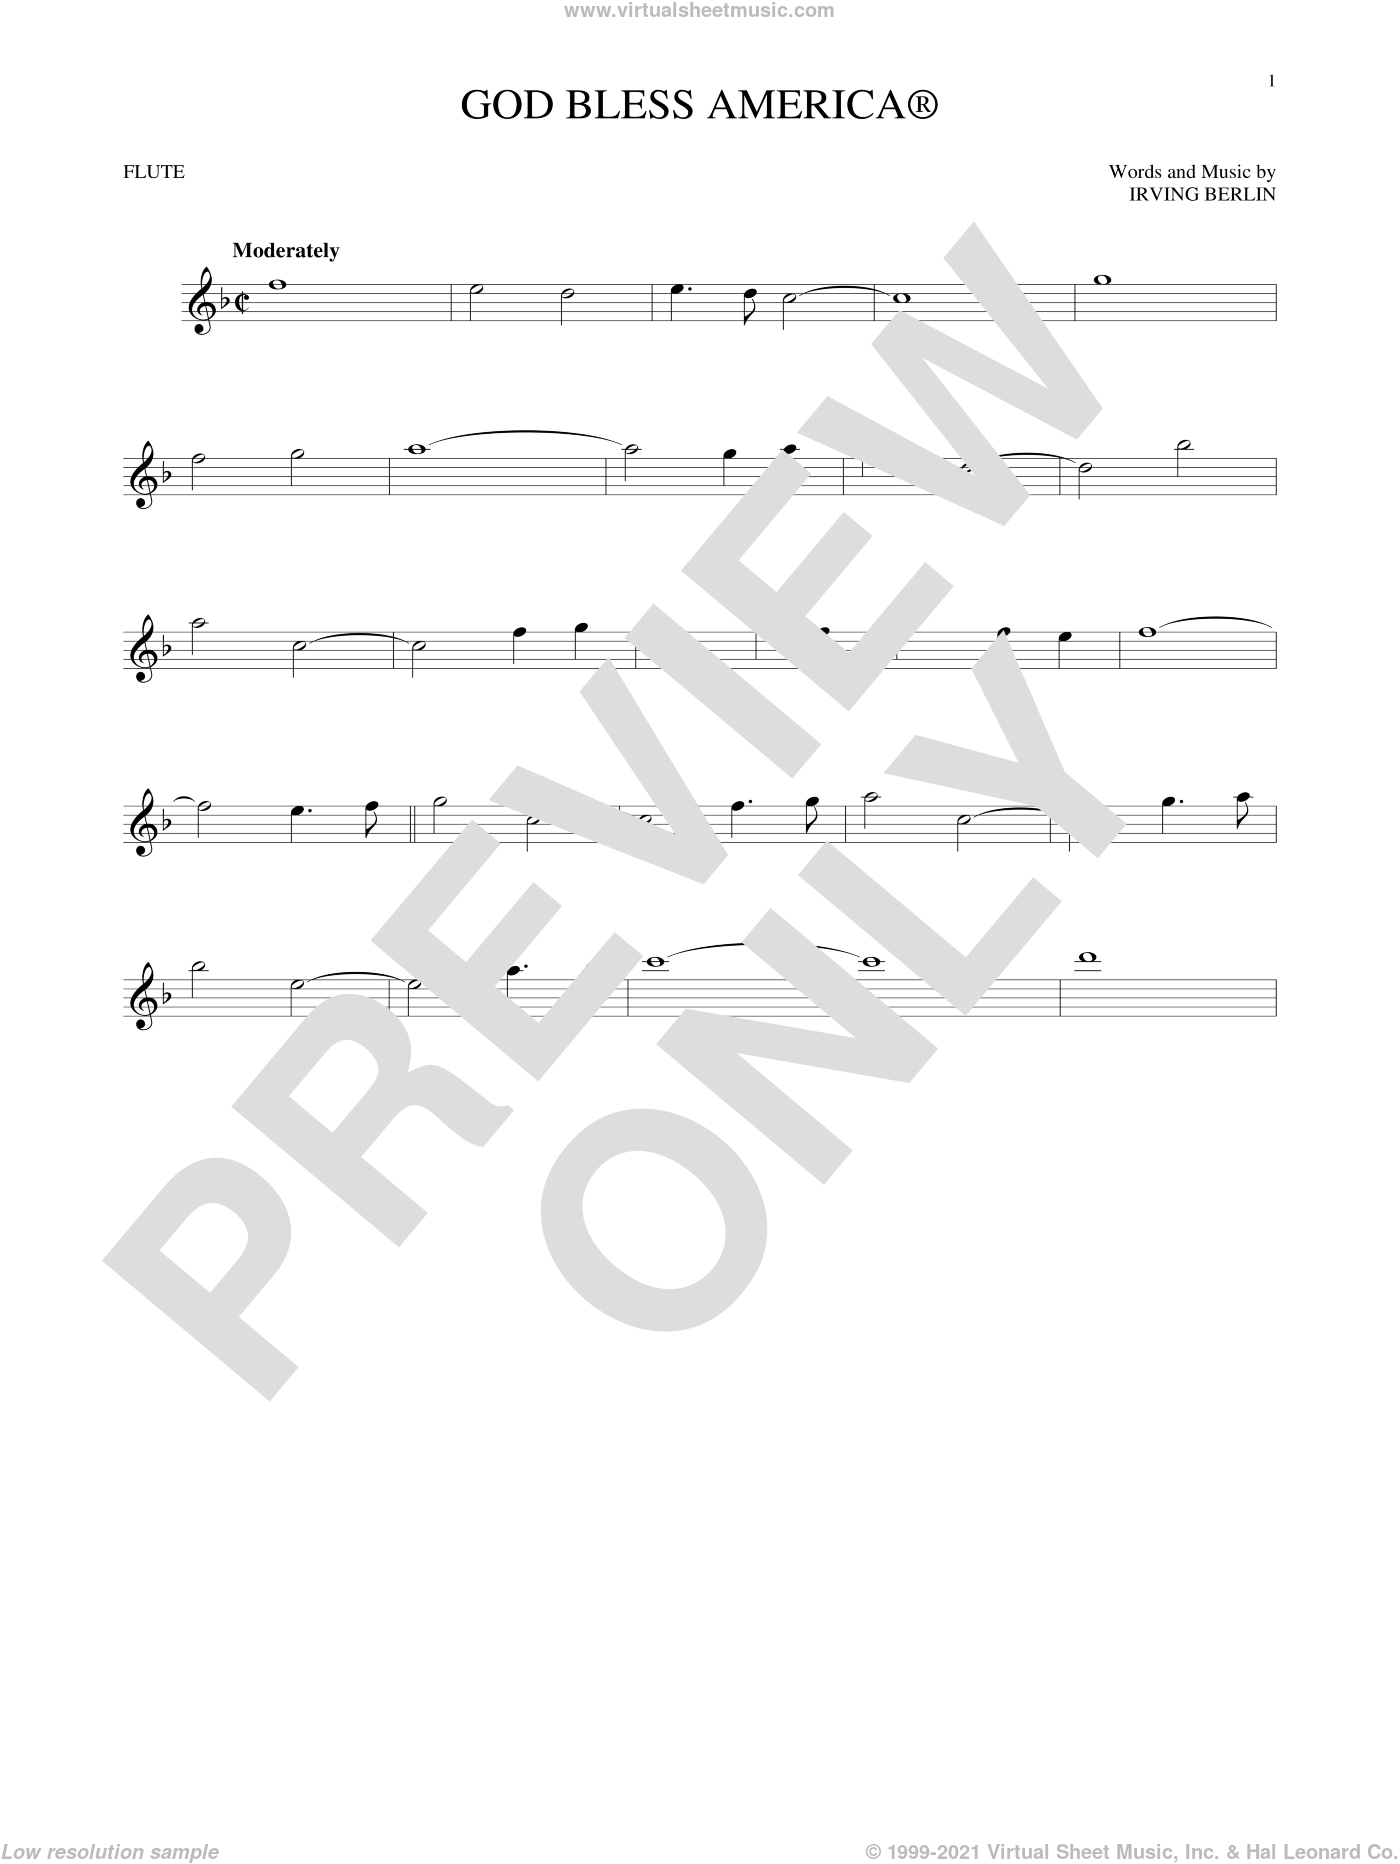 God Bless America sheet music for flute solo by Irving Berlin, intermediate skill level